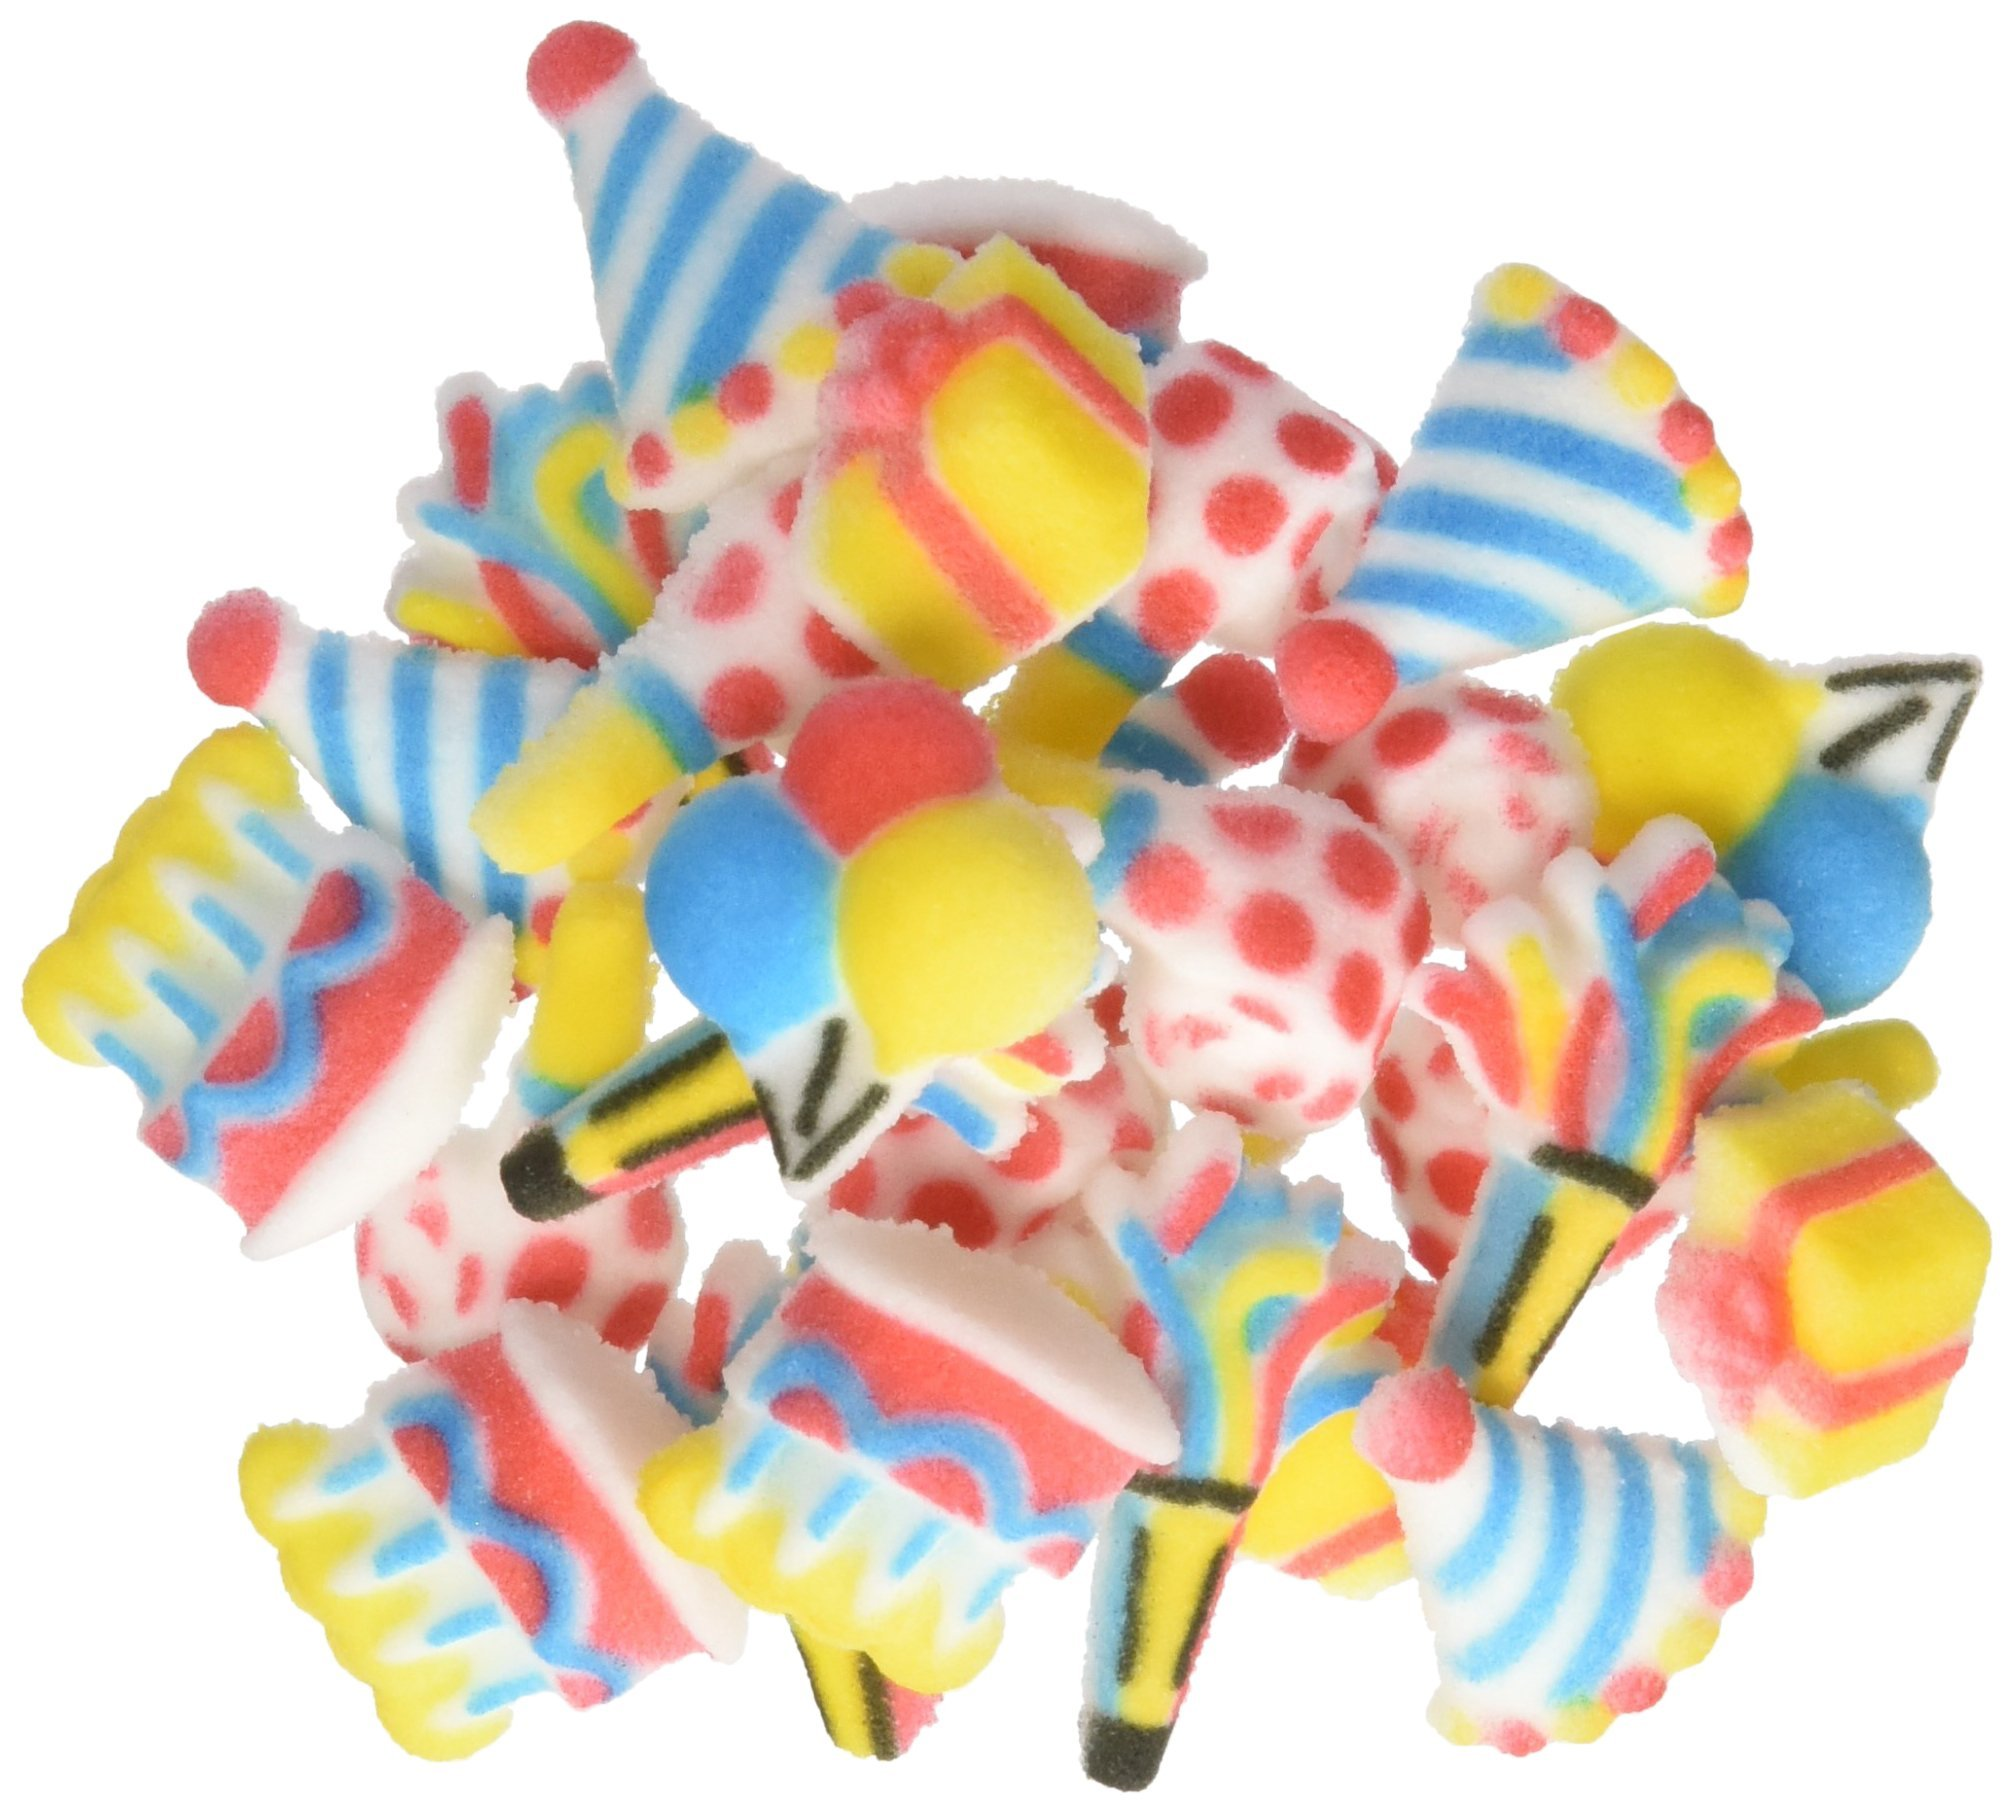 Lucks Dec-Ons Molded Sugar Cupcake Topper, Mini Birthday Assortment, 7/8-1 1/2 Inch, 210 Count